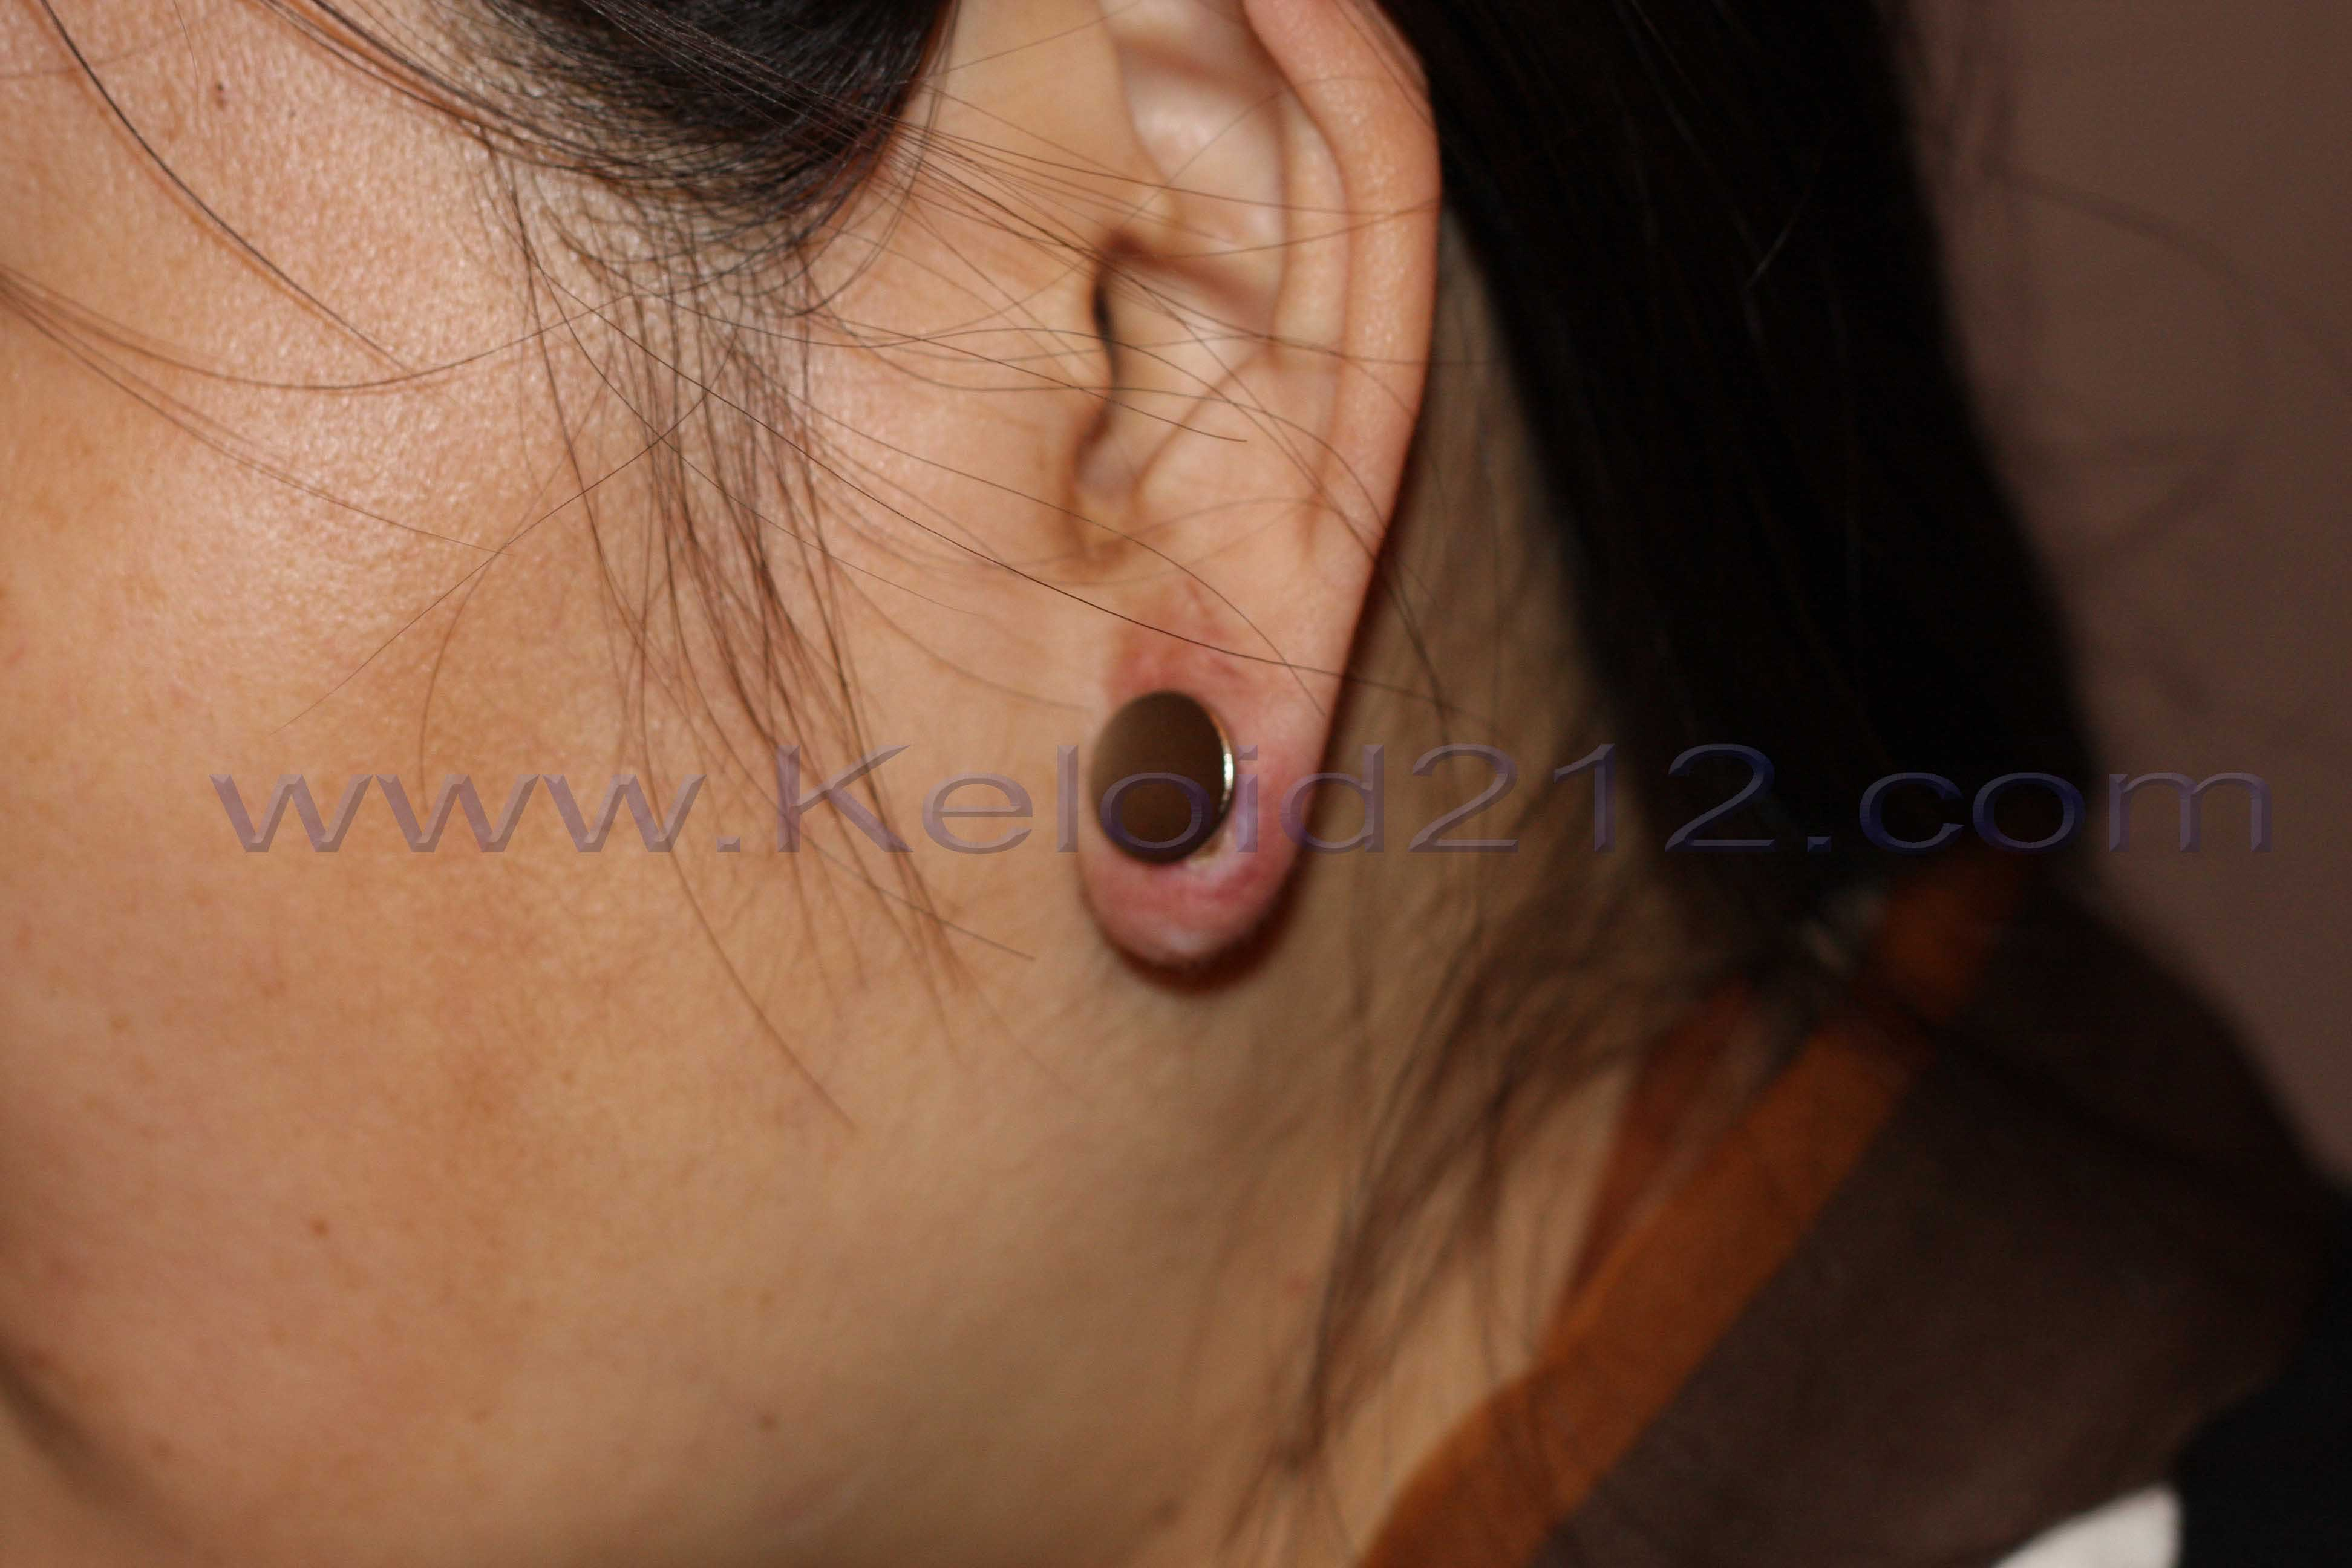 Earlobe Keloid Cure Results